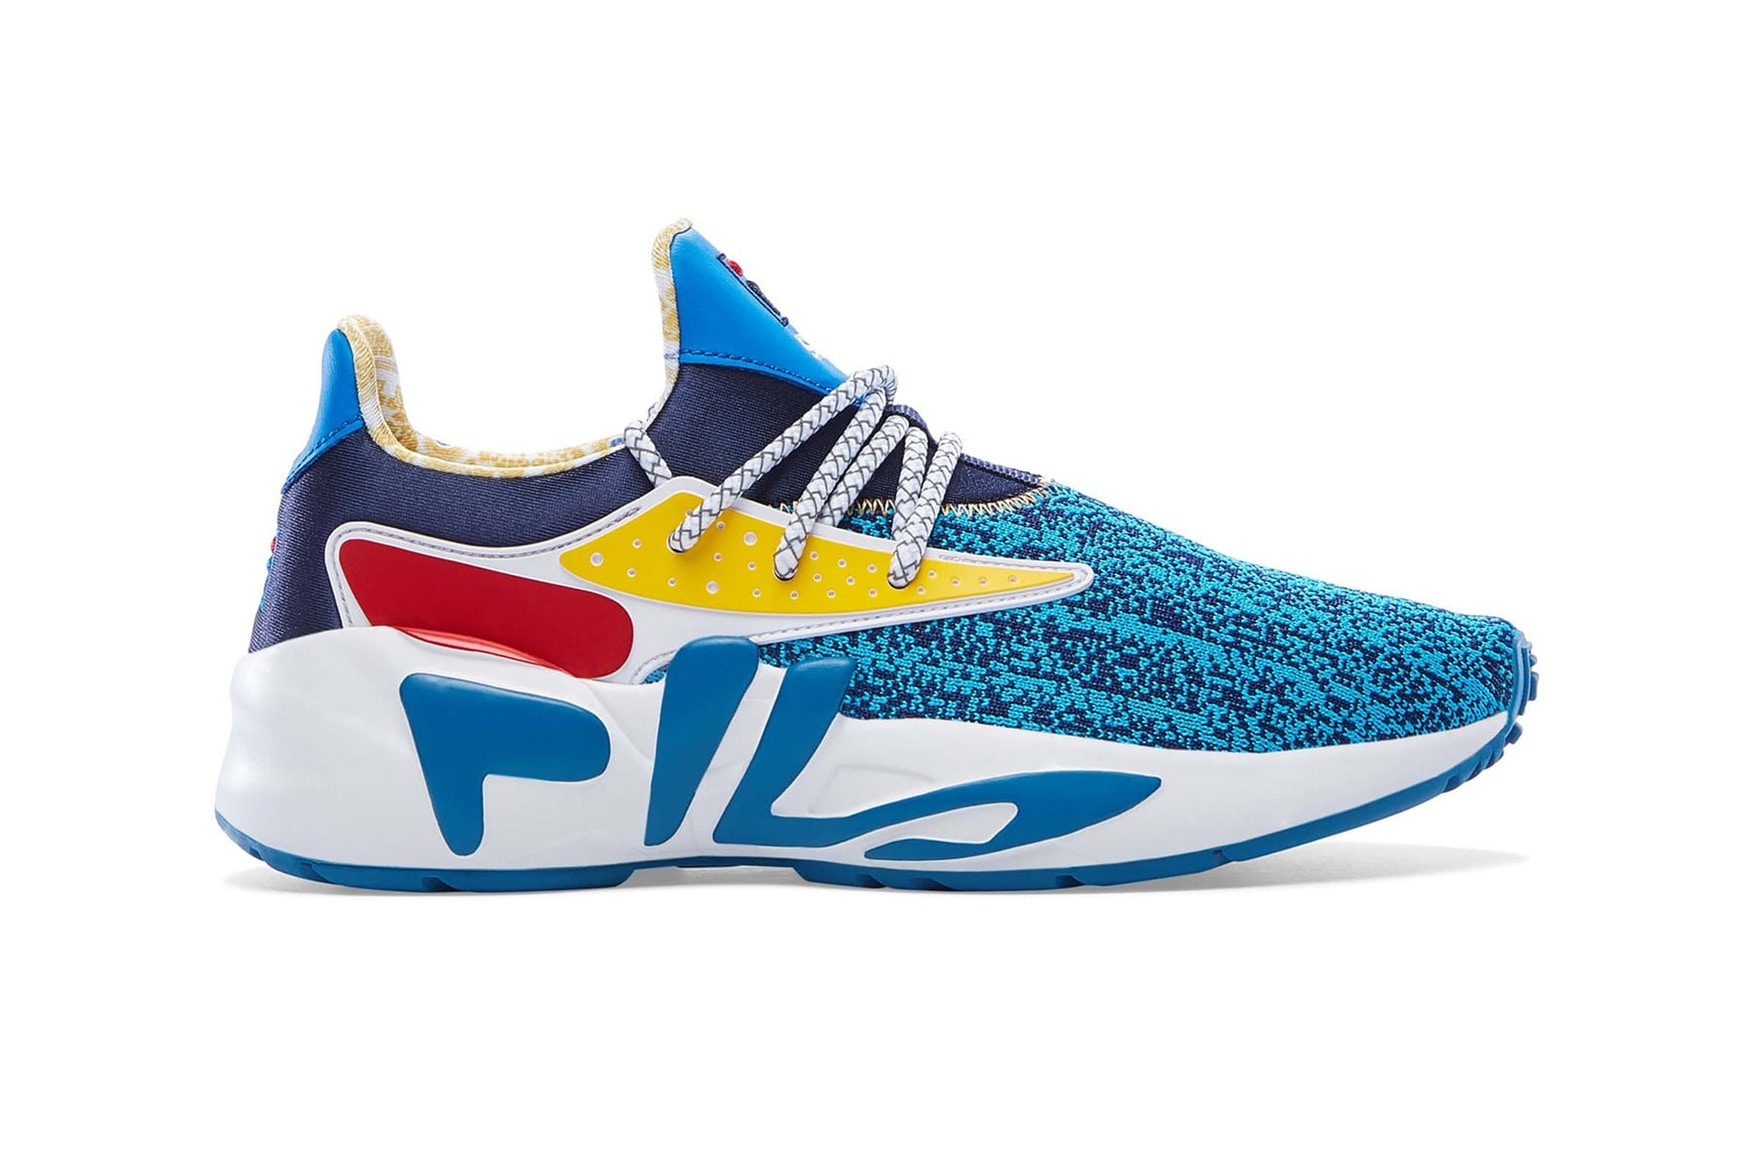 fila-revives-the-classic-mindblower-with-over-40-limited-edition-collaborations-44